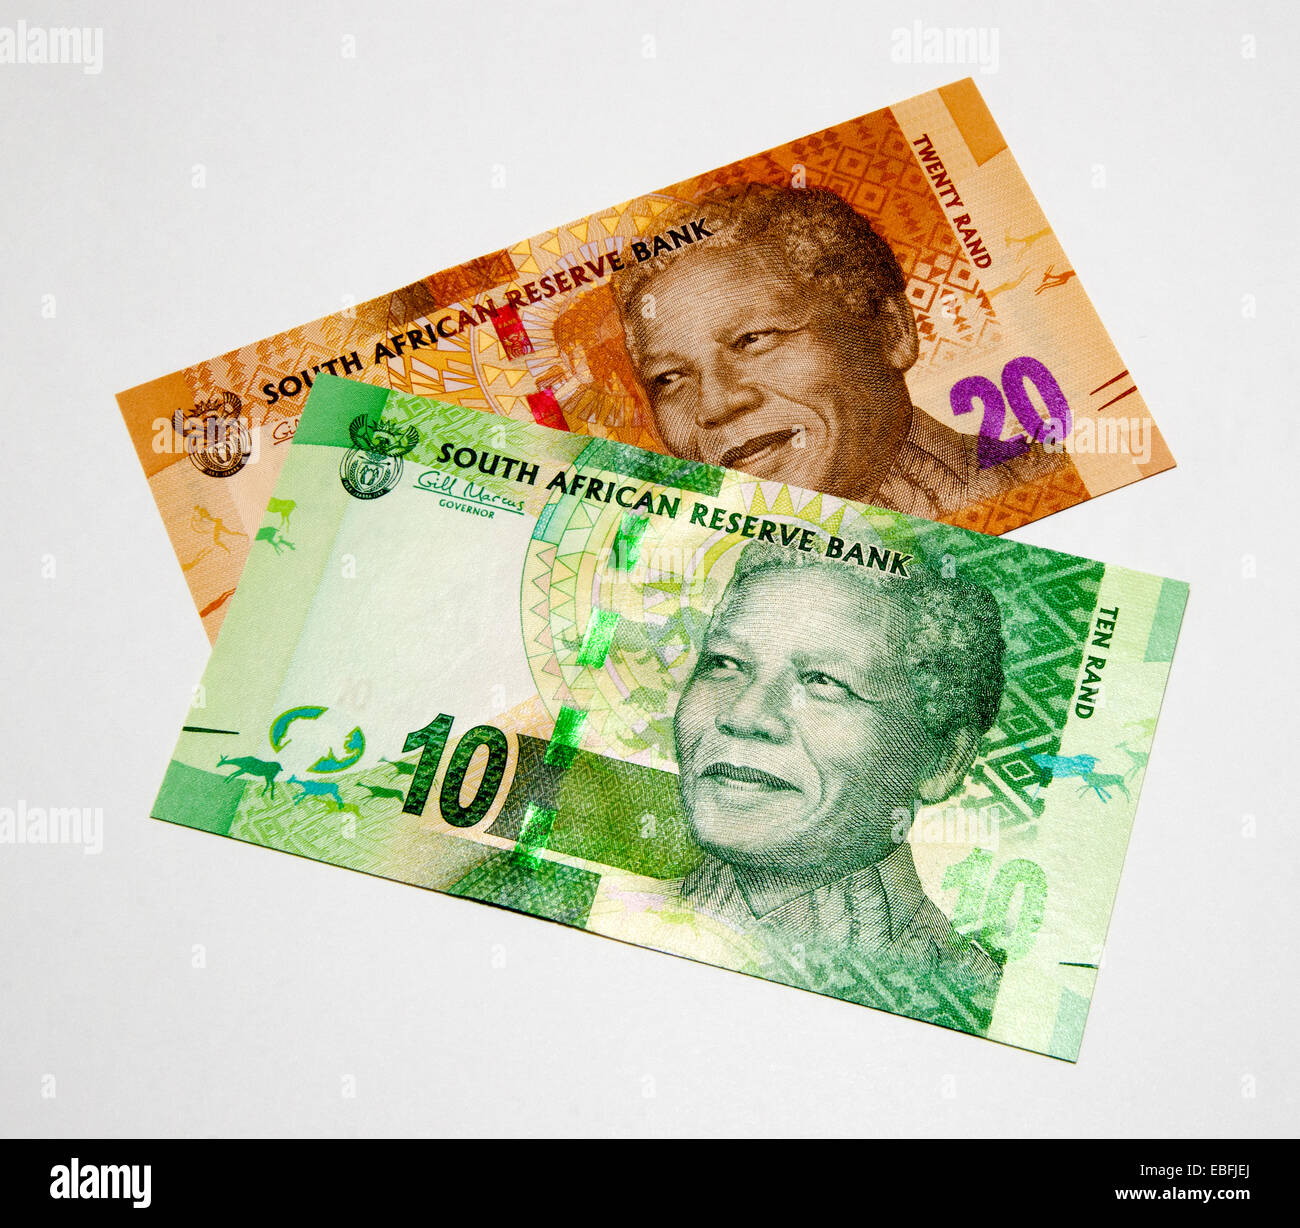 South Africa Bank Notes - Stock Image